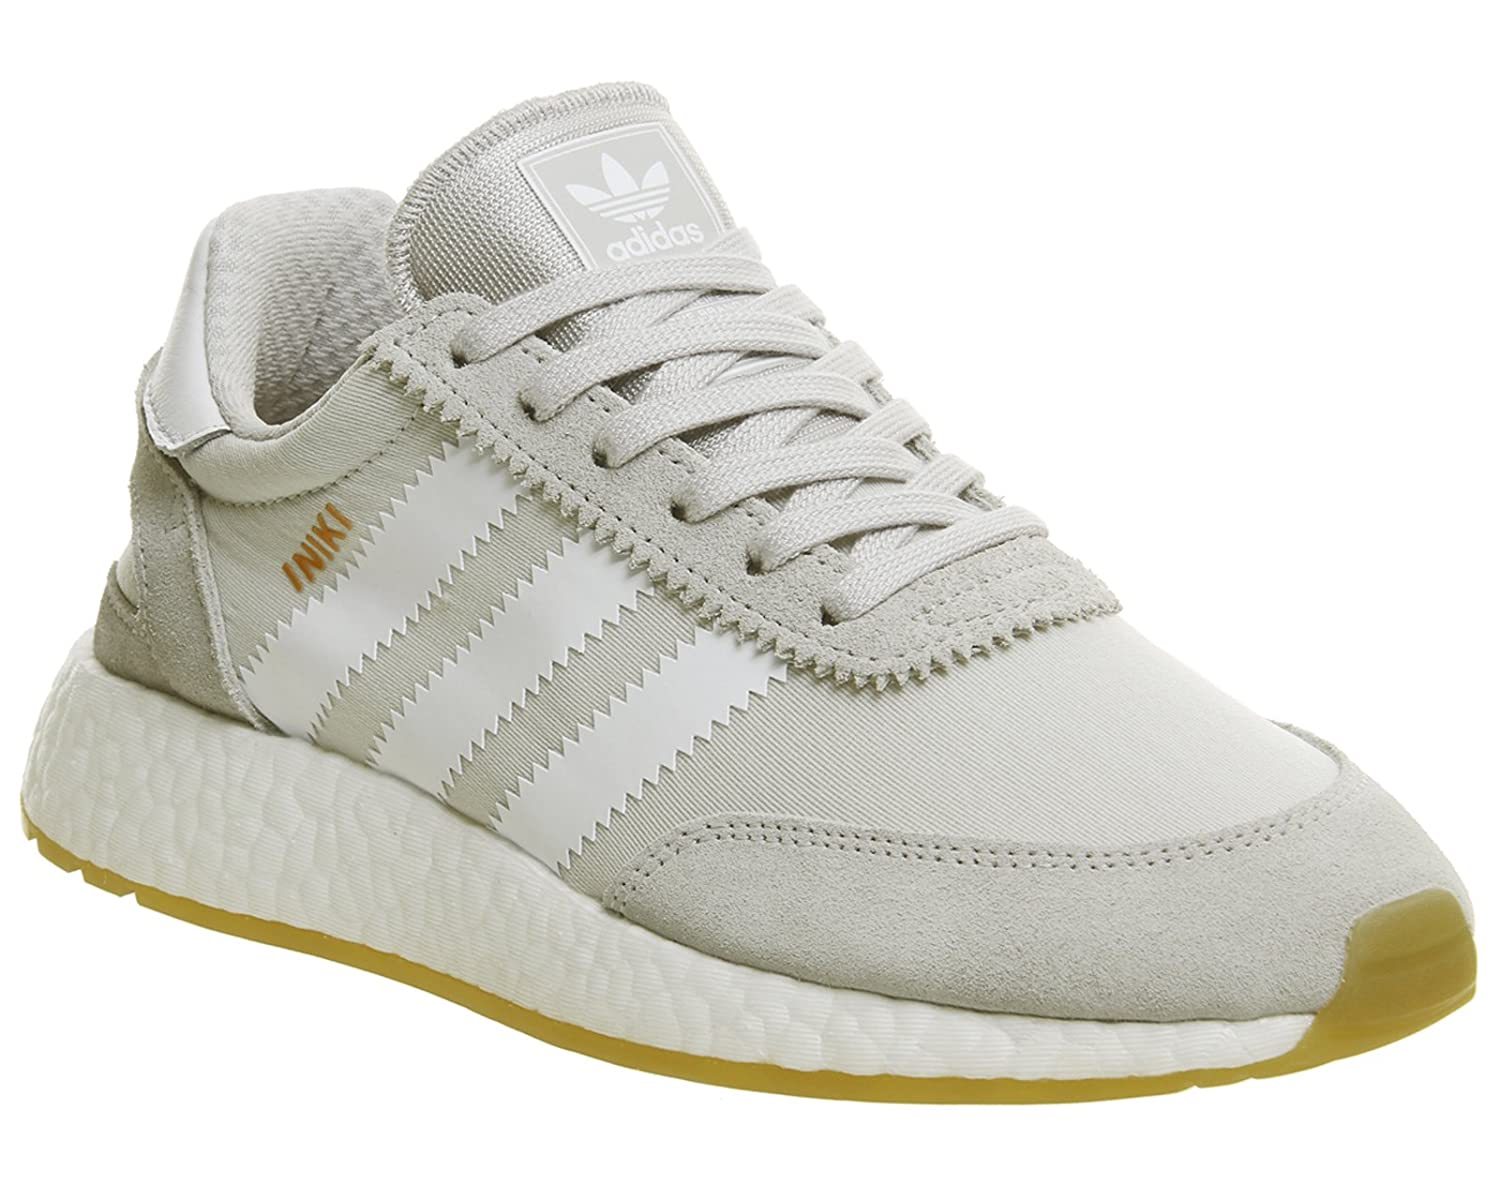 huge discount e960f 318e0 hot sale 2017 adidas Iniki Runner W, Chaussures de sport femme